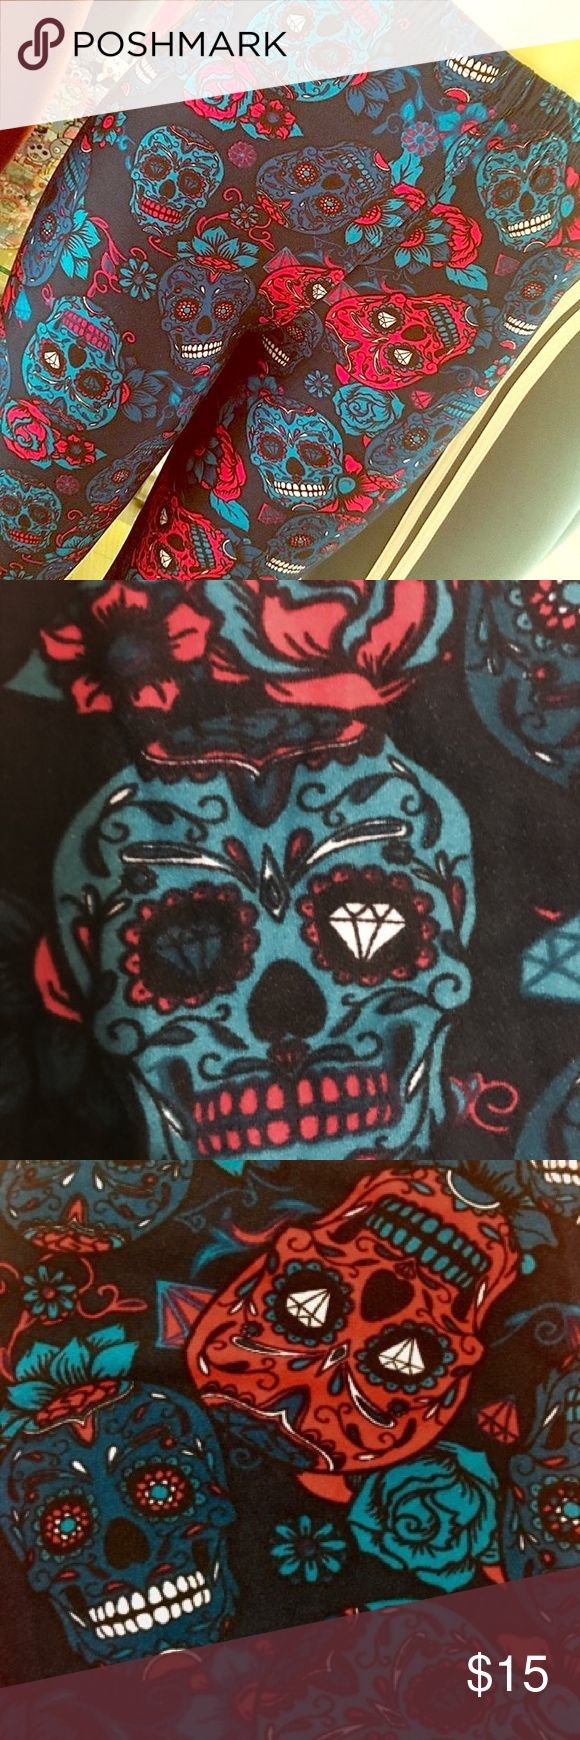 Halloween Soft Leggings Sugar Skull Plus Size NWT Leggings Plus Size    Specifications   92% Polyester 8% Spandex (similar to LuLaRoe and Agnes and Dora)   Plus Size ( Size 12-20 )   Buttery soft stretchy silky fabric   Breathable fabric to provide an effortlessly comfy and flawless fit   Seamless comfort Elastic Waistband    Note:  Color may be lighter or darker due to the different PC display  One size generally fits sizes 2-12  Plus one size generally fits sizes 12-20  Fit can vary with…